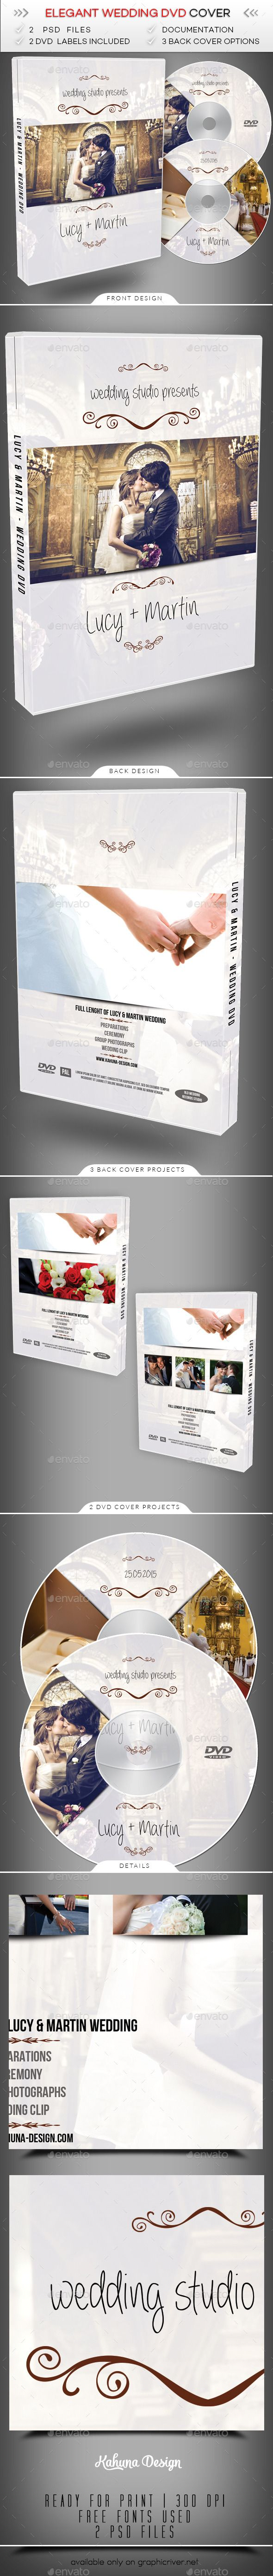 Wedding DVD Cover 2  #PSD • Click here to download ! http://graphicriver.net/item/wedding-dvd-cover-2/9258934?s_rank=17&ref=pxcr